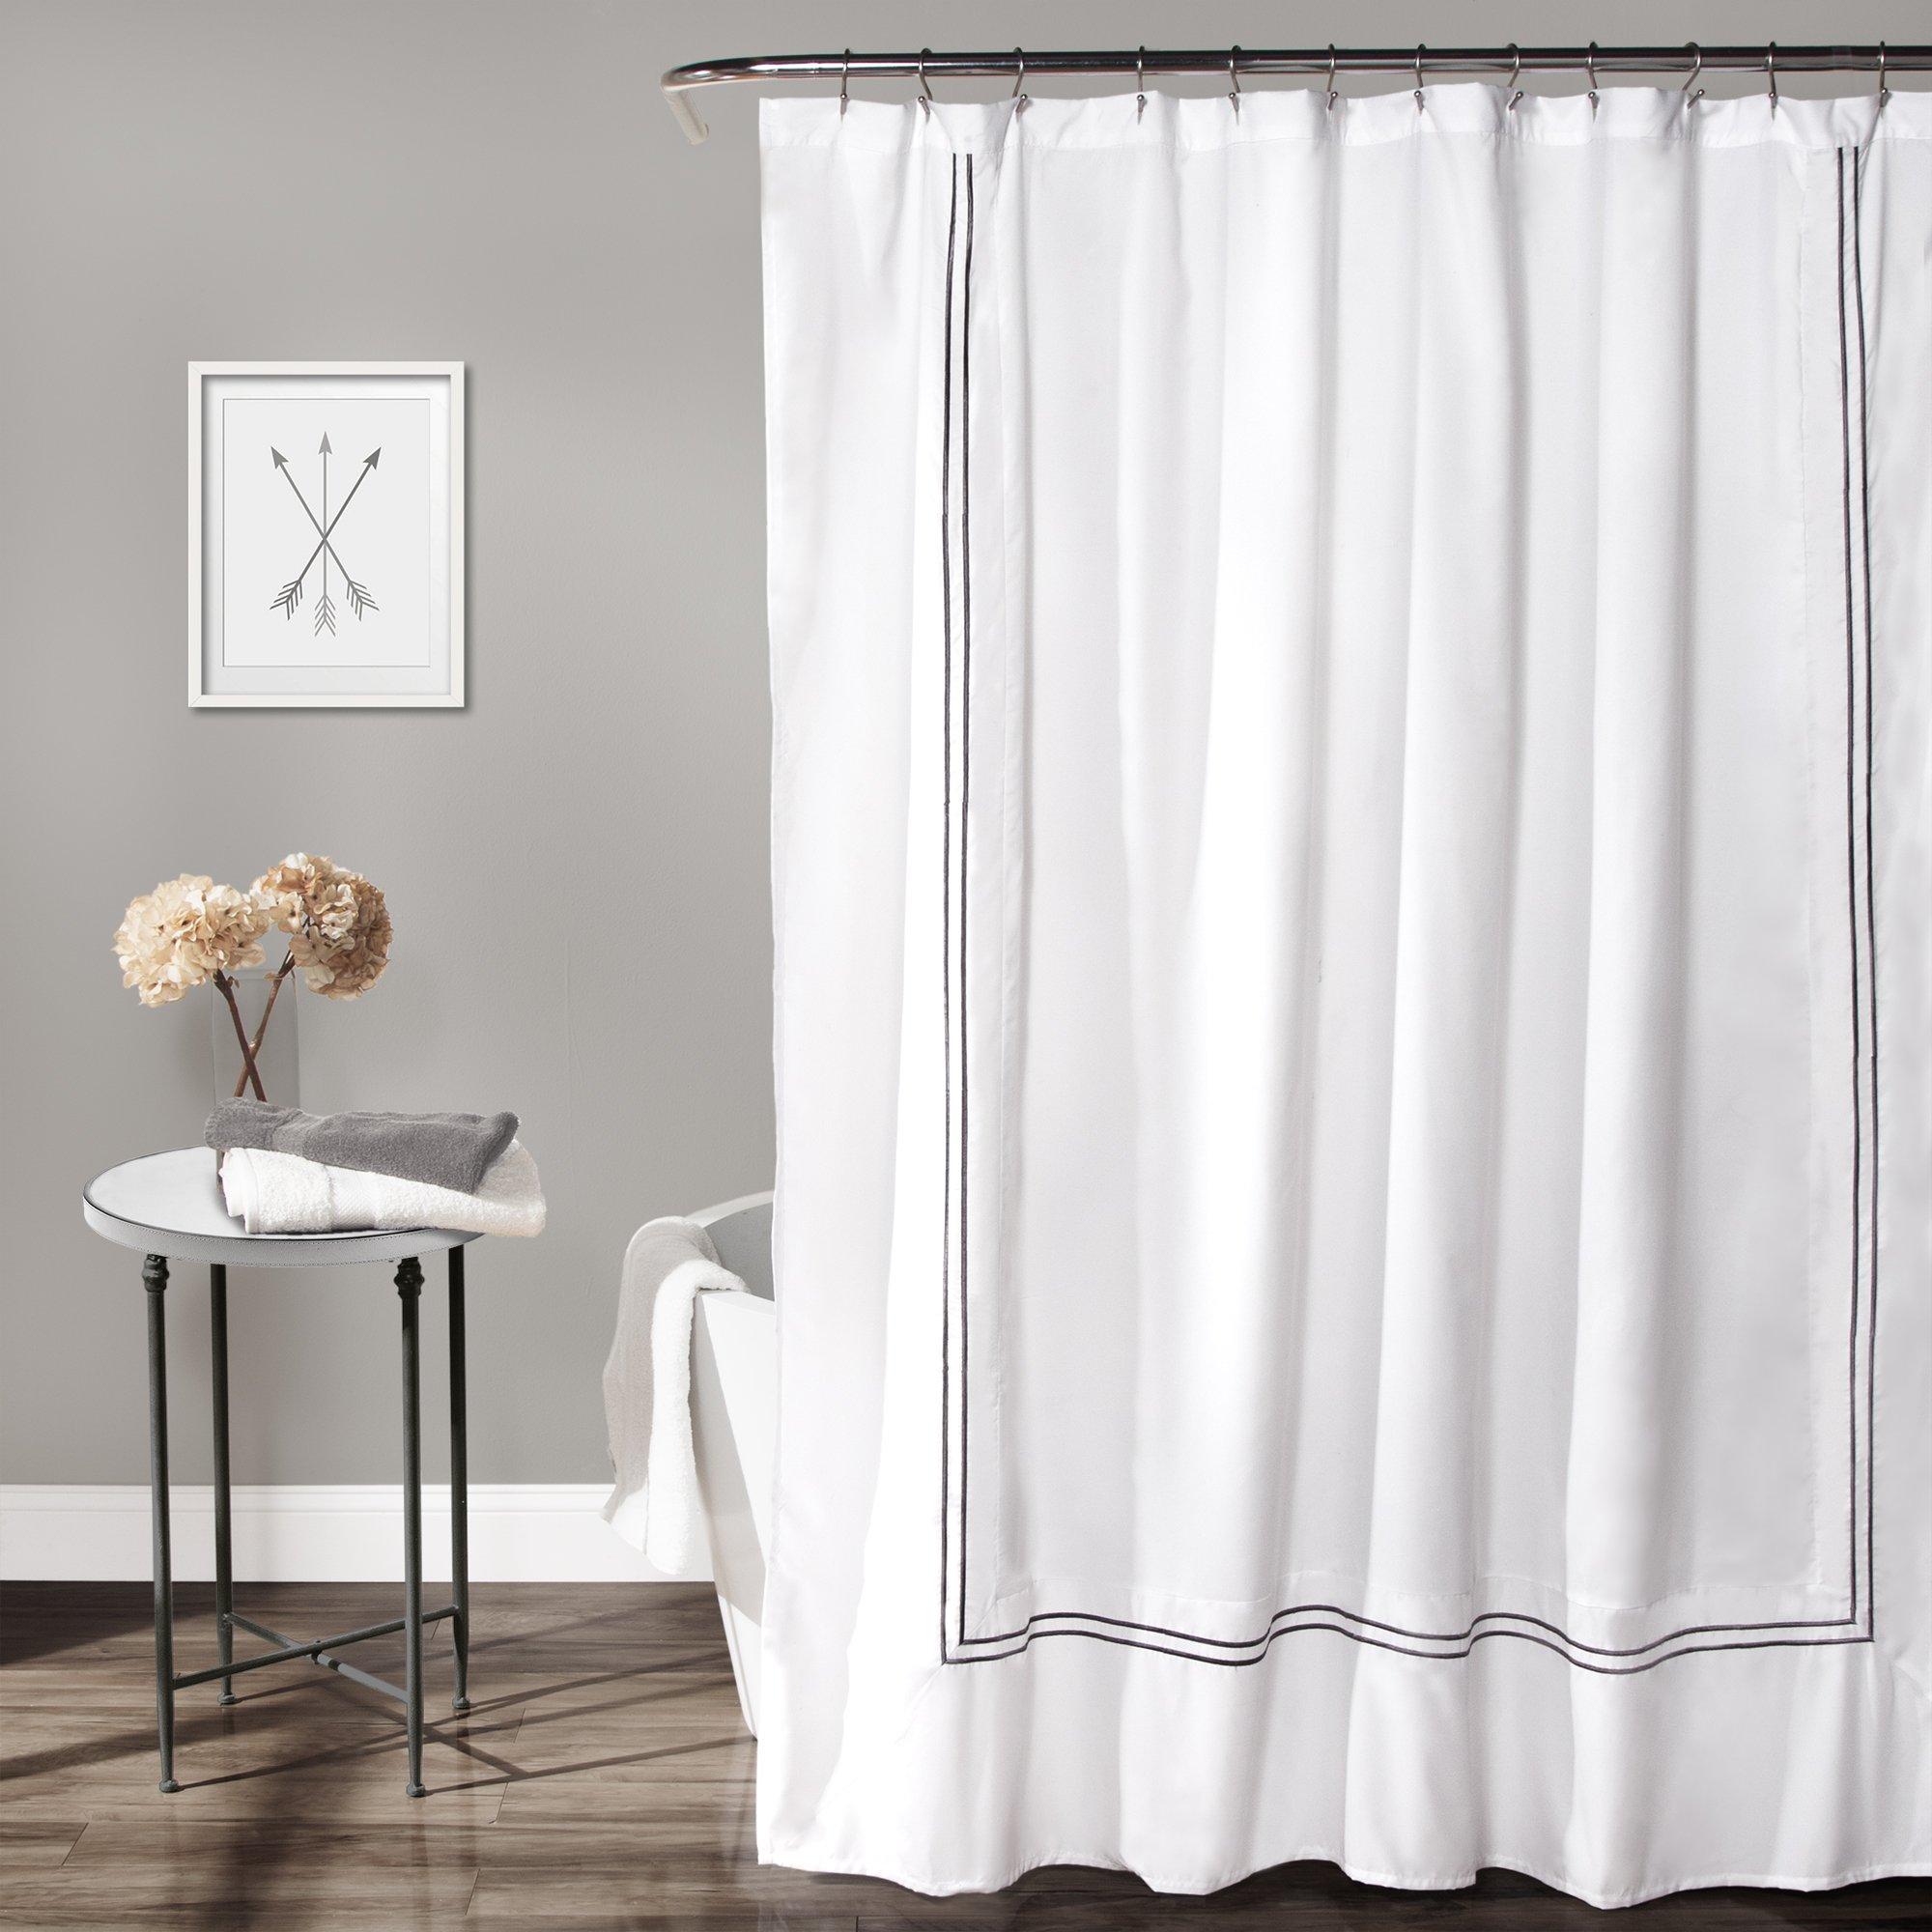 Lush Decor Hotel Collection Shower Curtain, 72'' by 72'', White/Gray